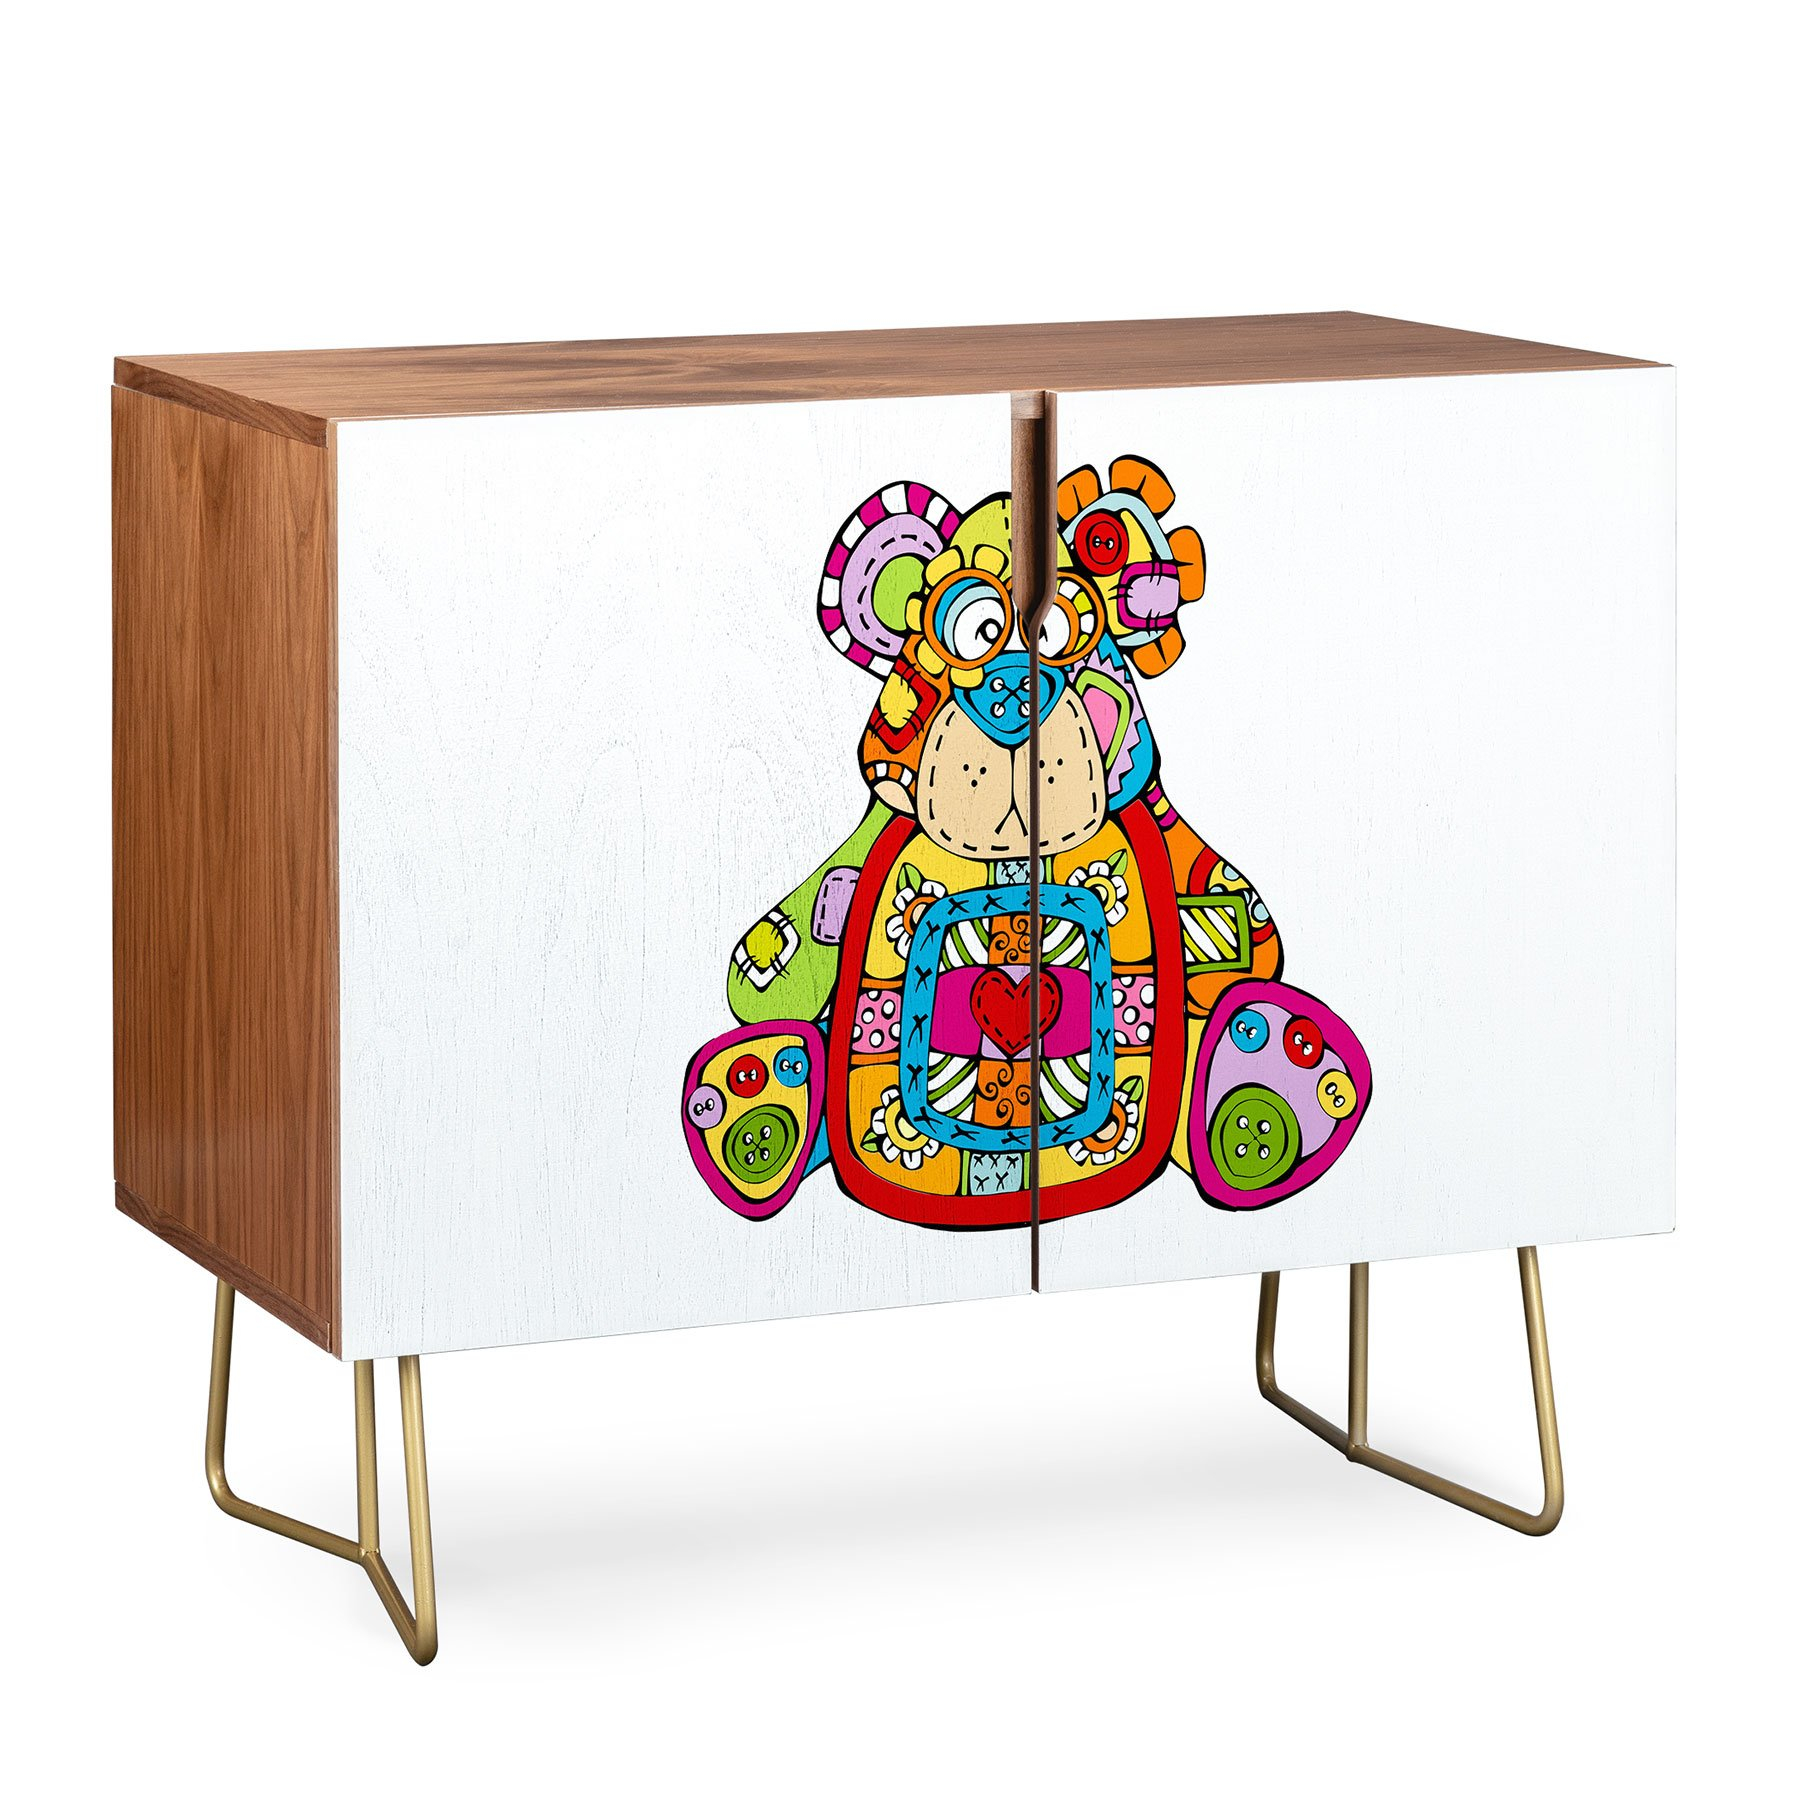 Image of Angry Squirrel Studio BEAR Button Nose Buddies Credenza